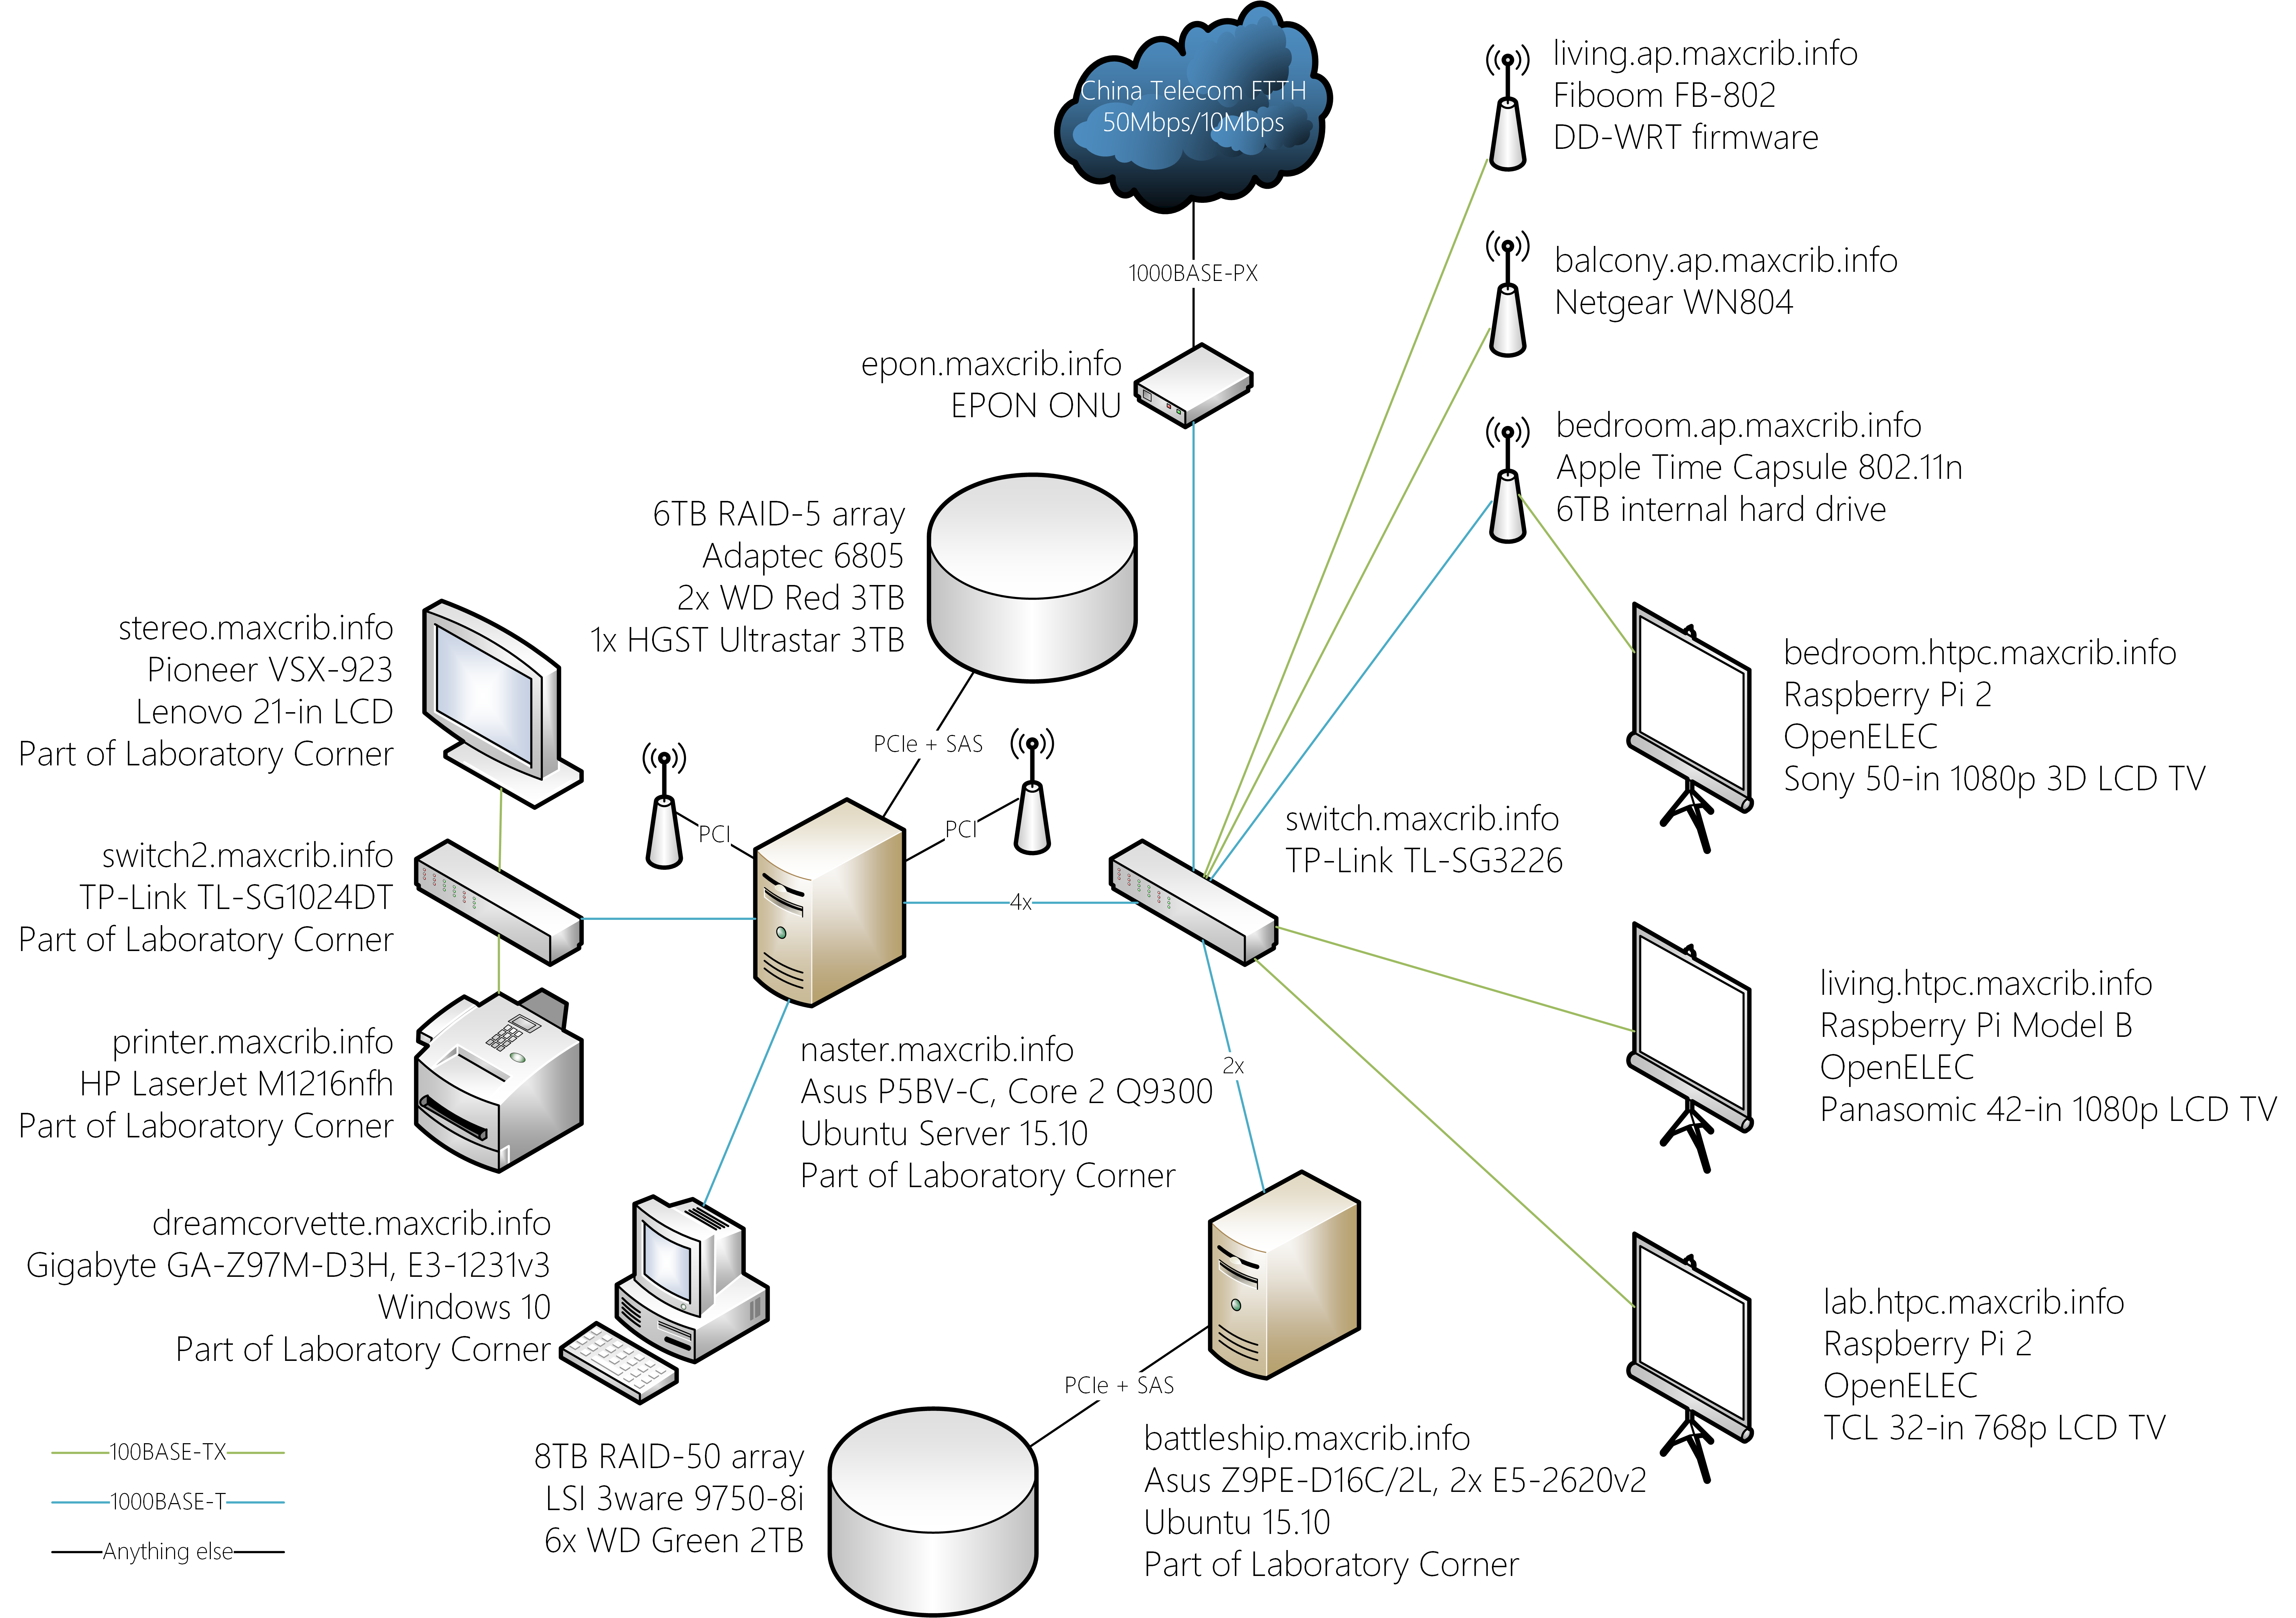 network layout showoff - page 8 - networking